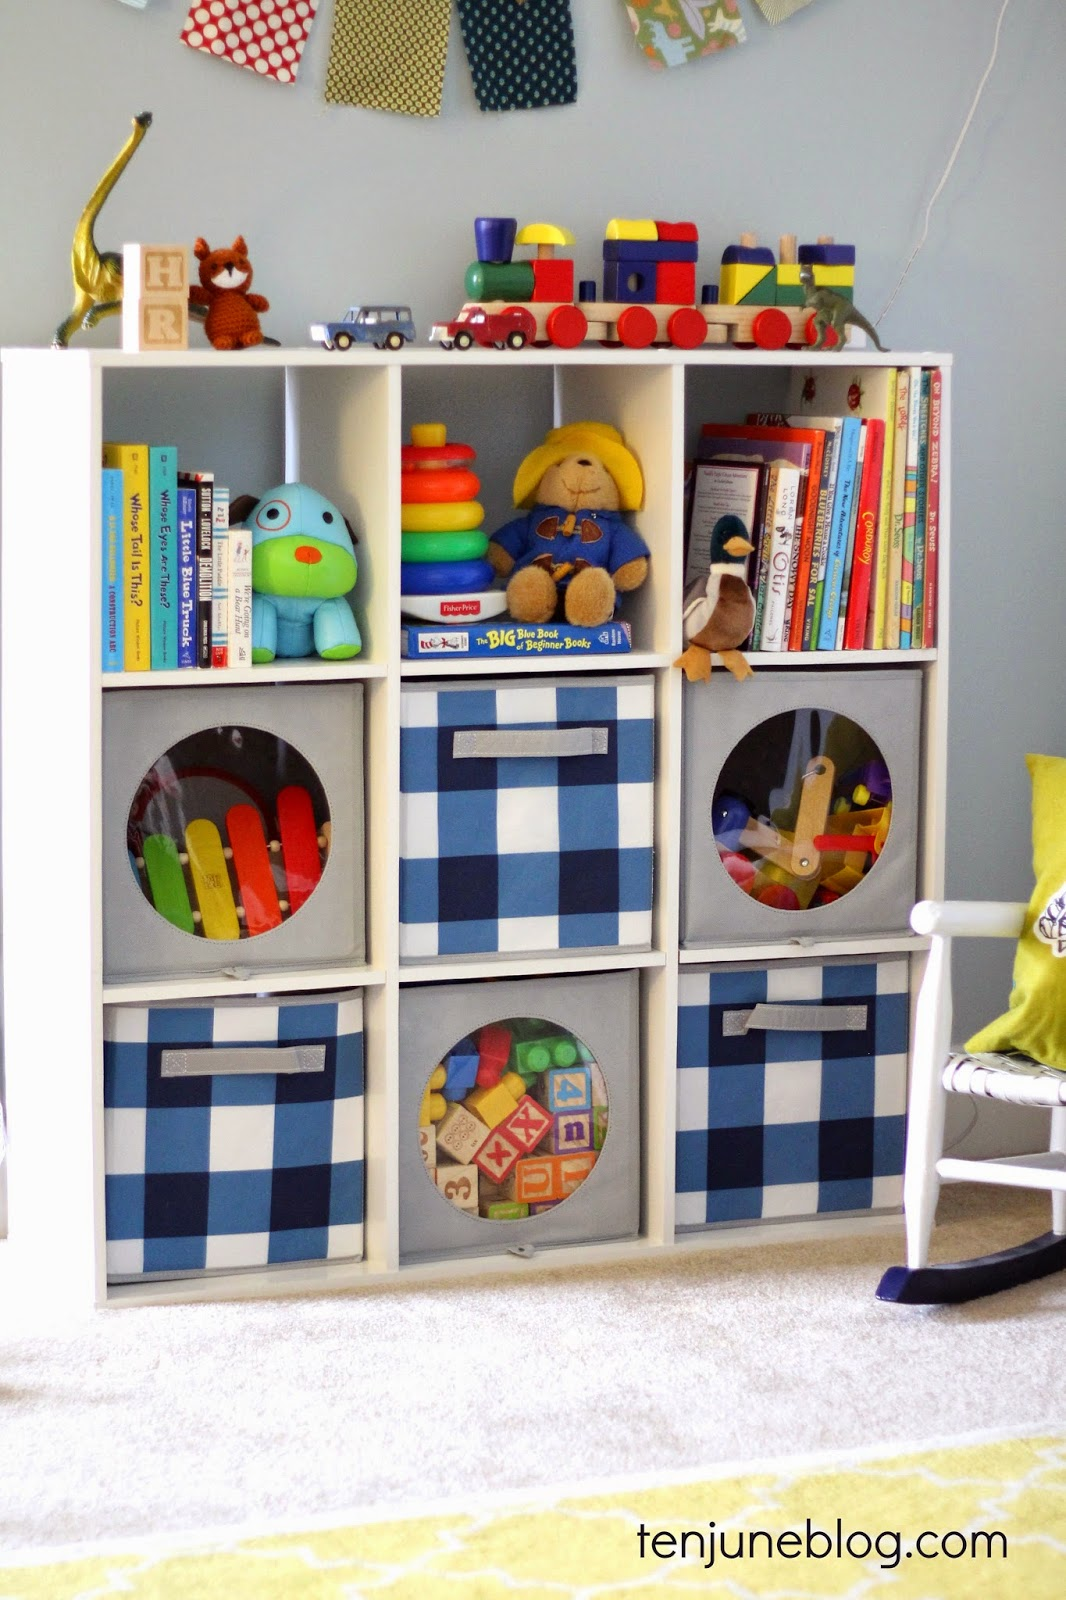 kids roomplay room toy storage ideas - Kids Room Storage Bins